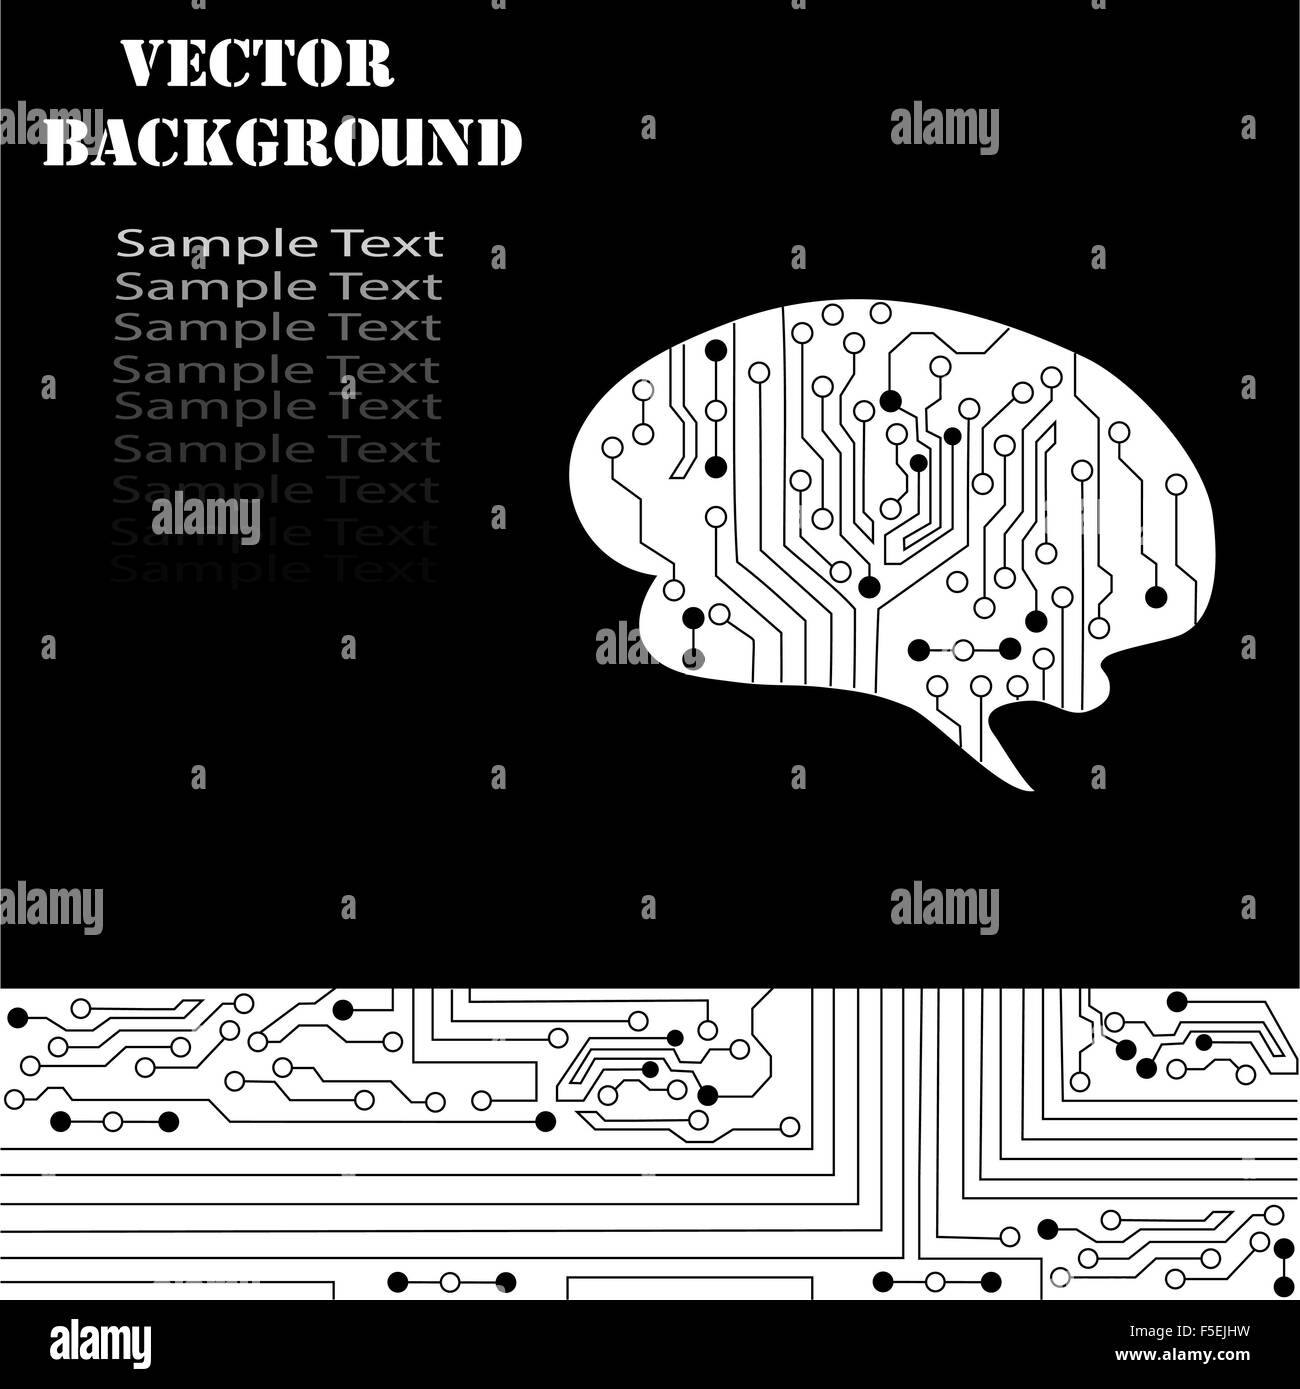 Technological brains vector background. Vector eps10. - Stock Image